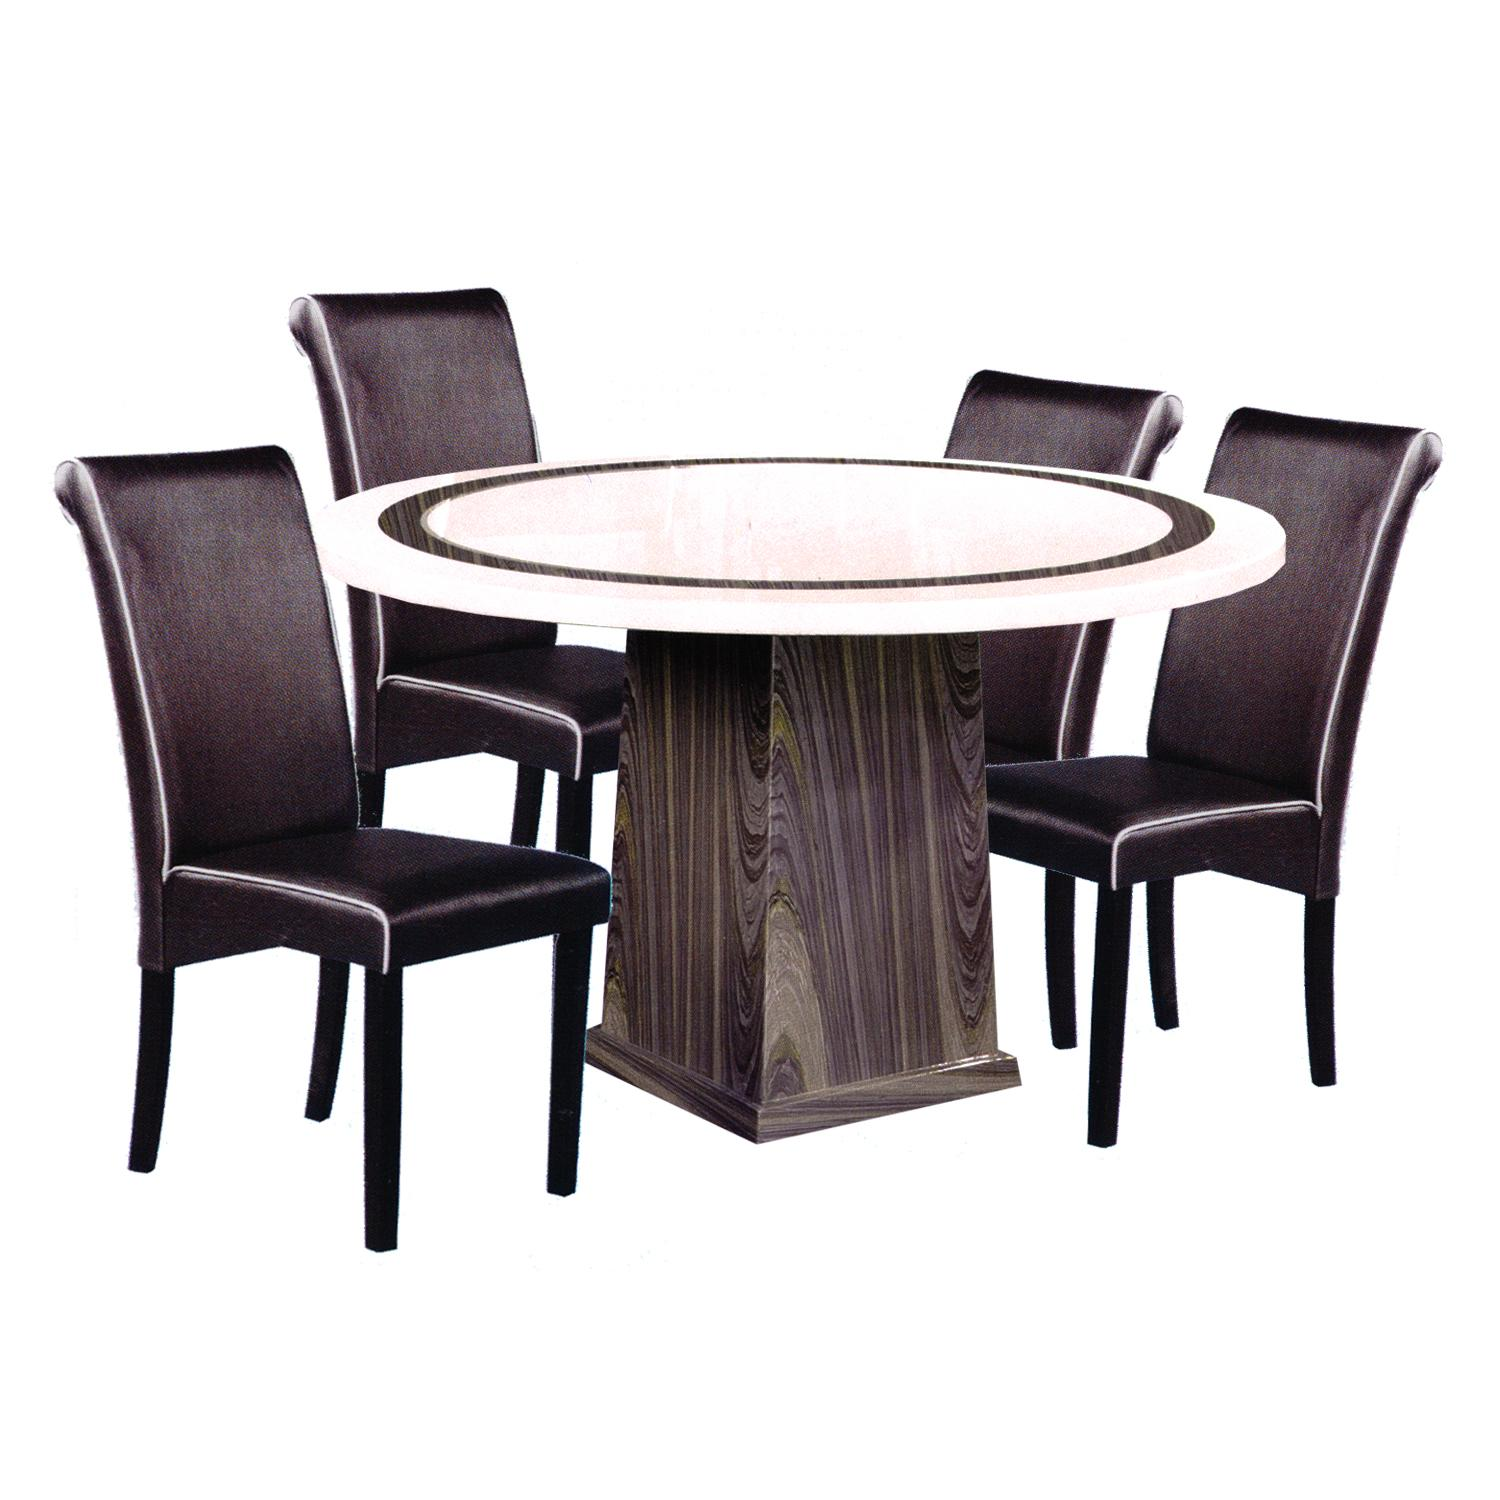 SORA / BARRY Marble Top 1+4 Dining Set